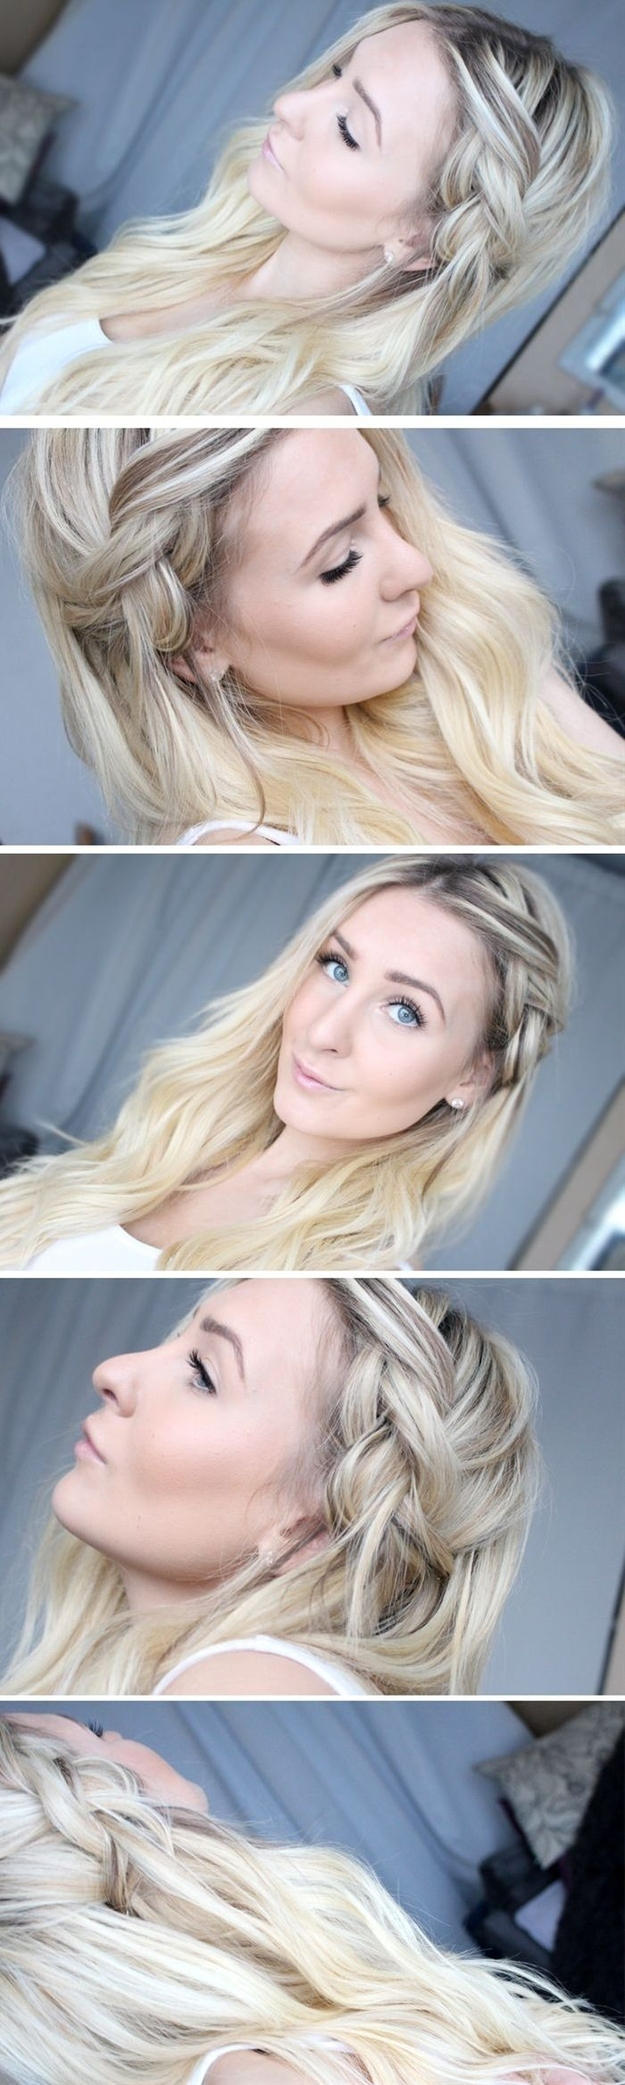 This half-done braid will stay even better in unwashed hair.